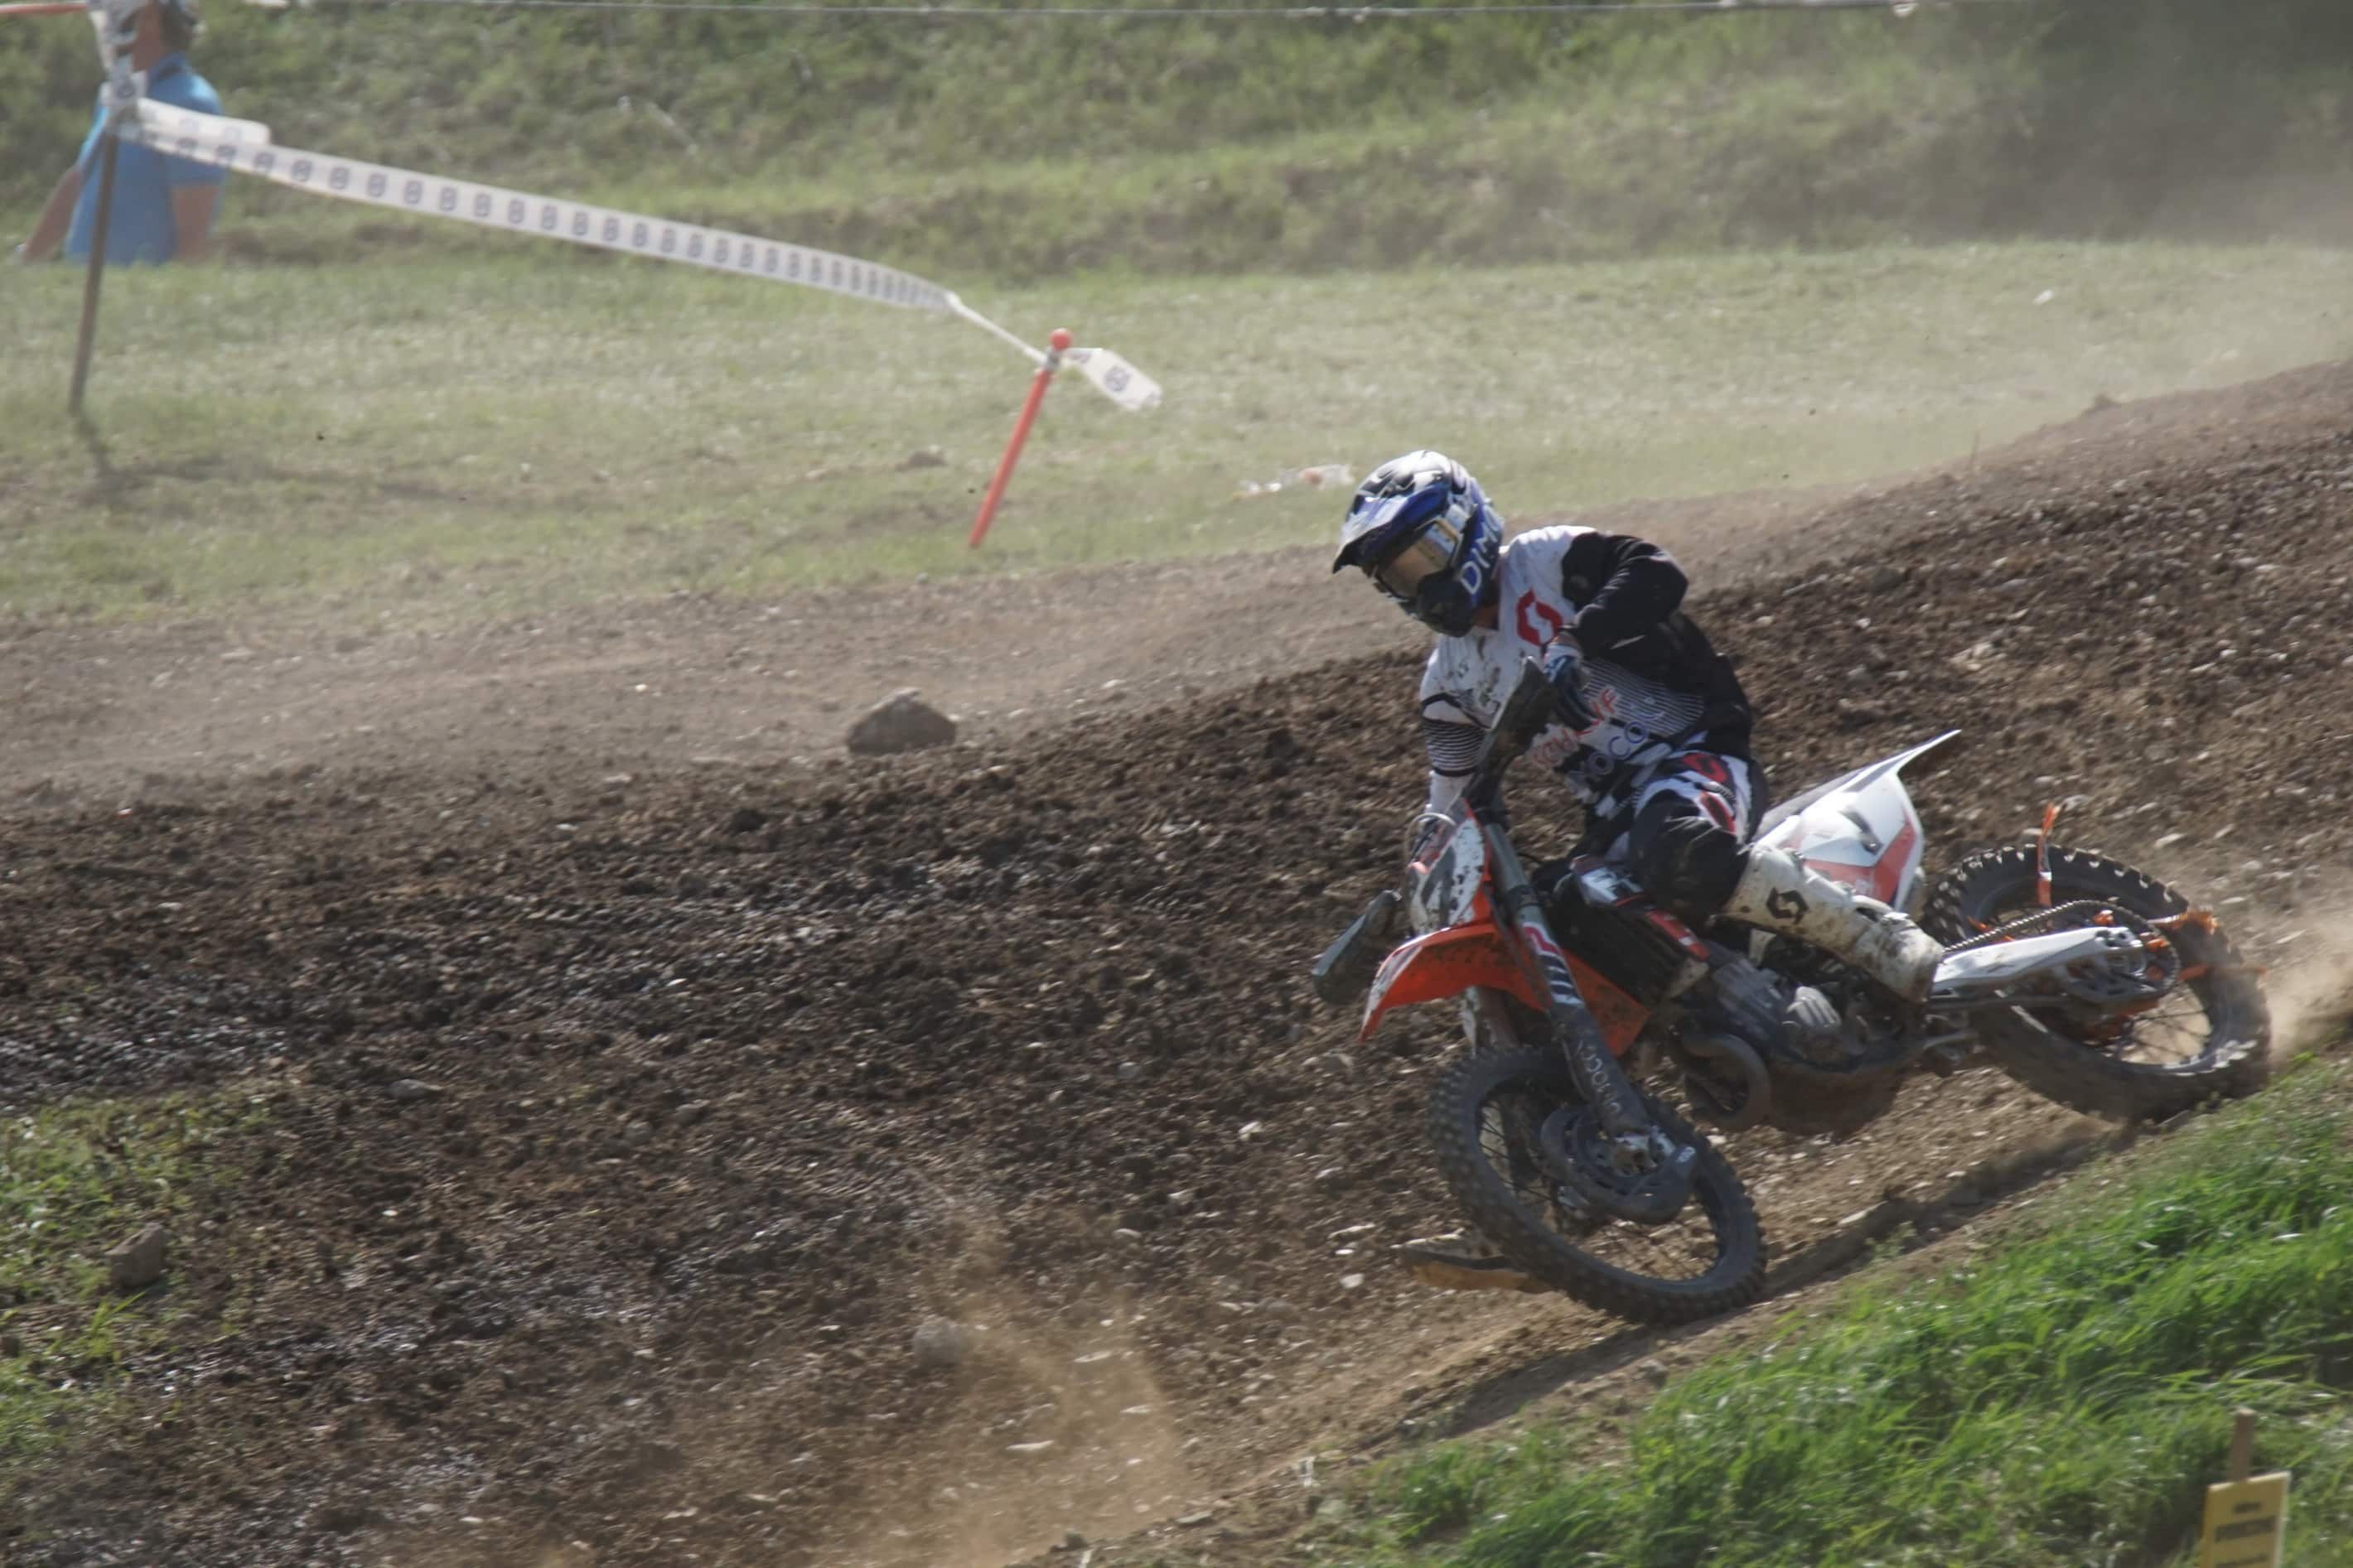 DSC 808_Moto Cross Sittendorf Teil1 am 29.04.2018